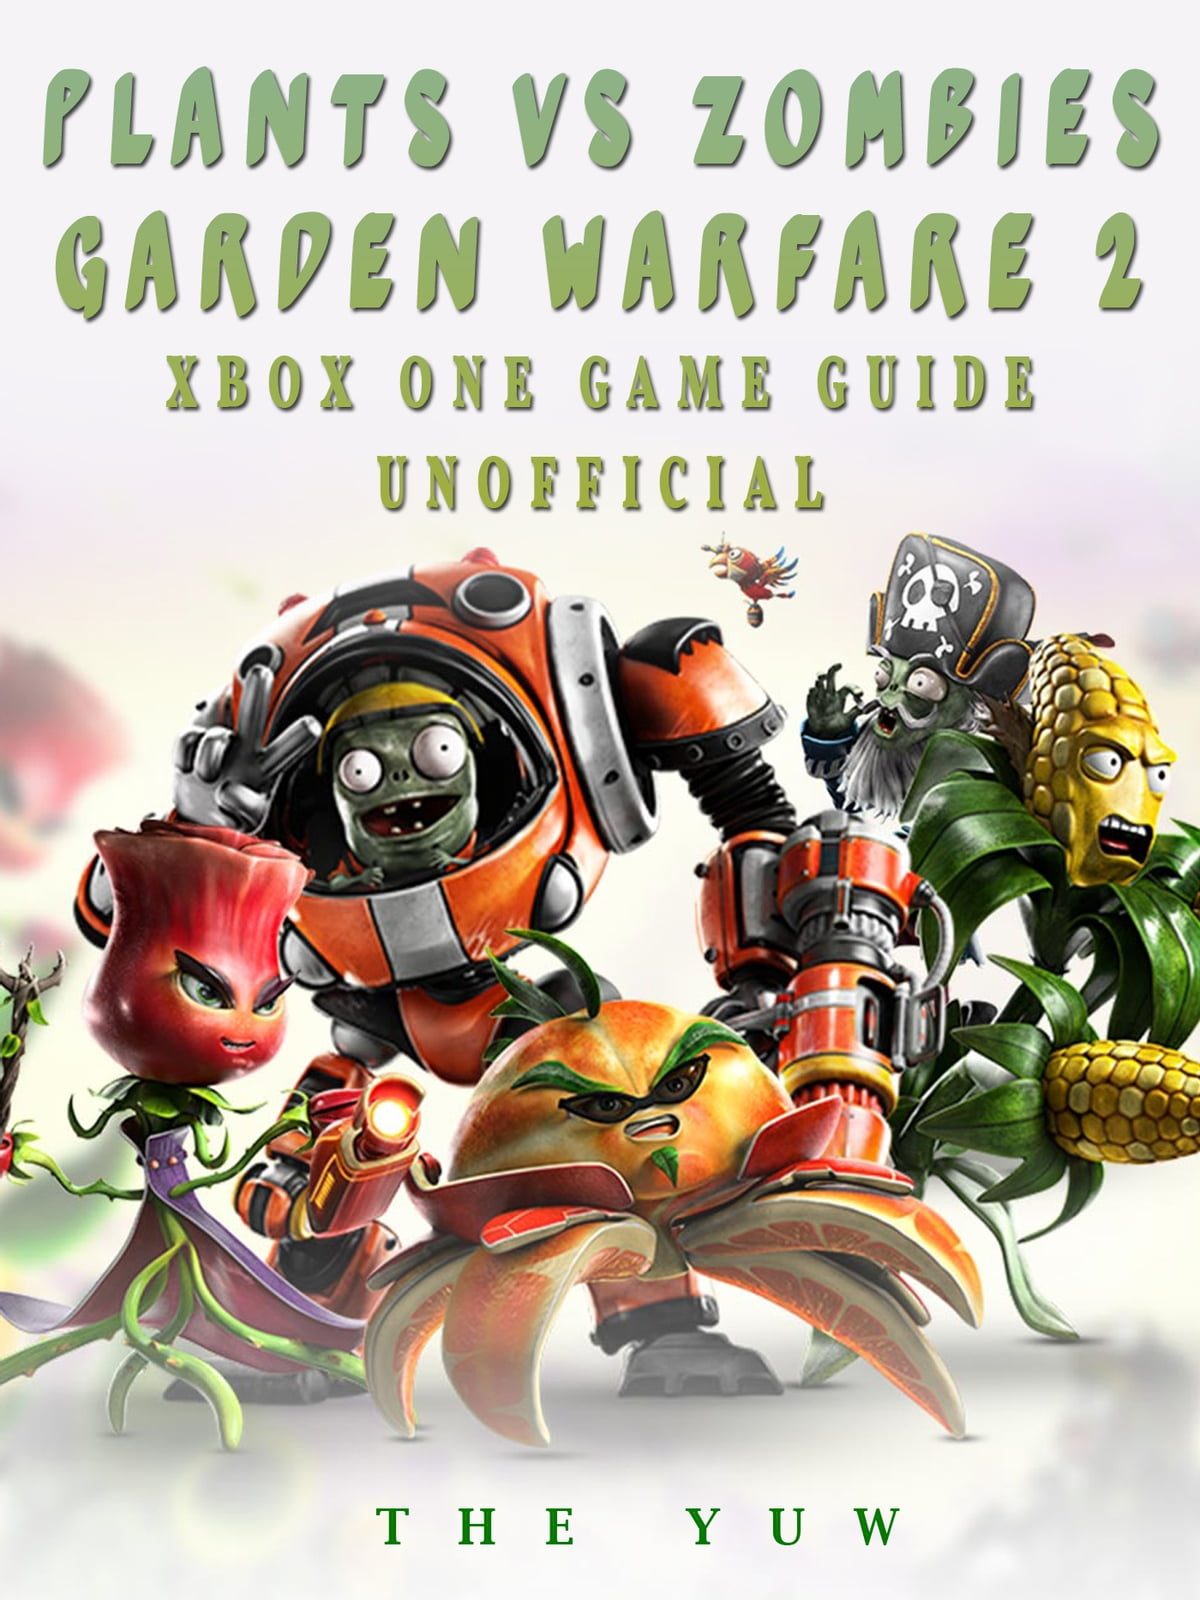 Plants vs zombies garden warfare 2 coin hack xbox one - Plants vs zombies garden warfare xbox one ...